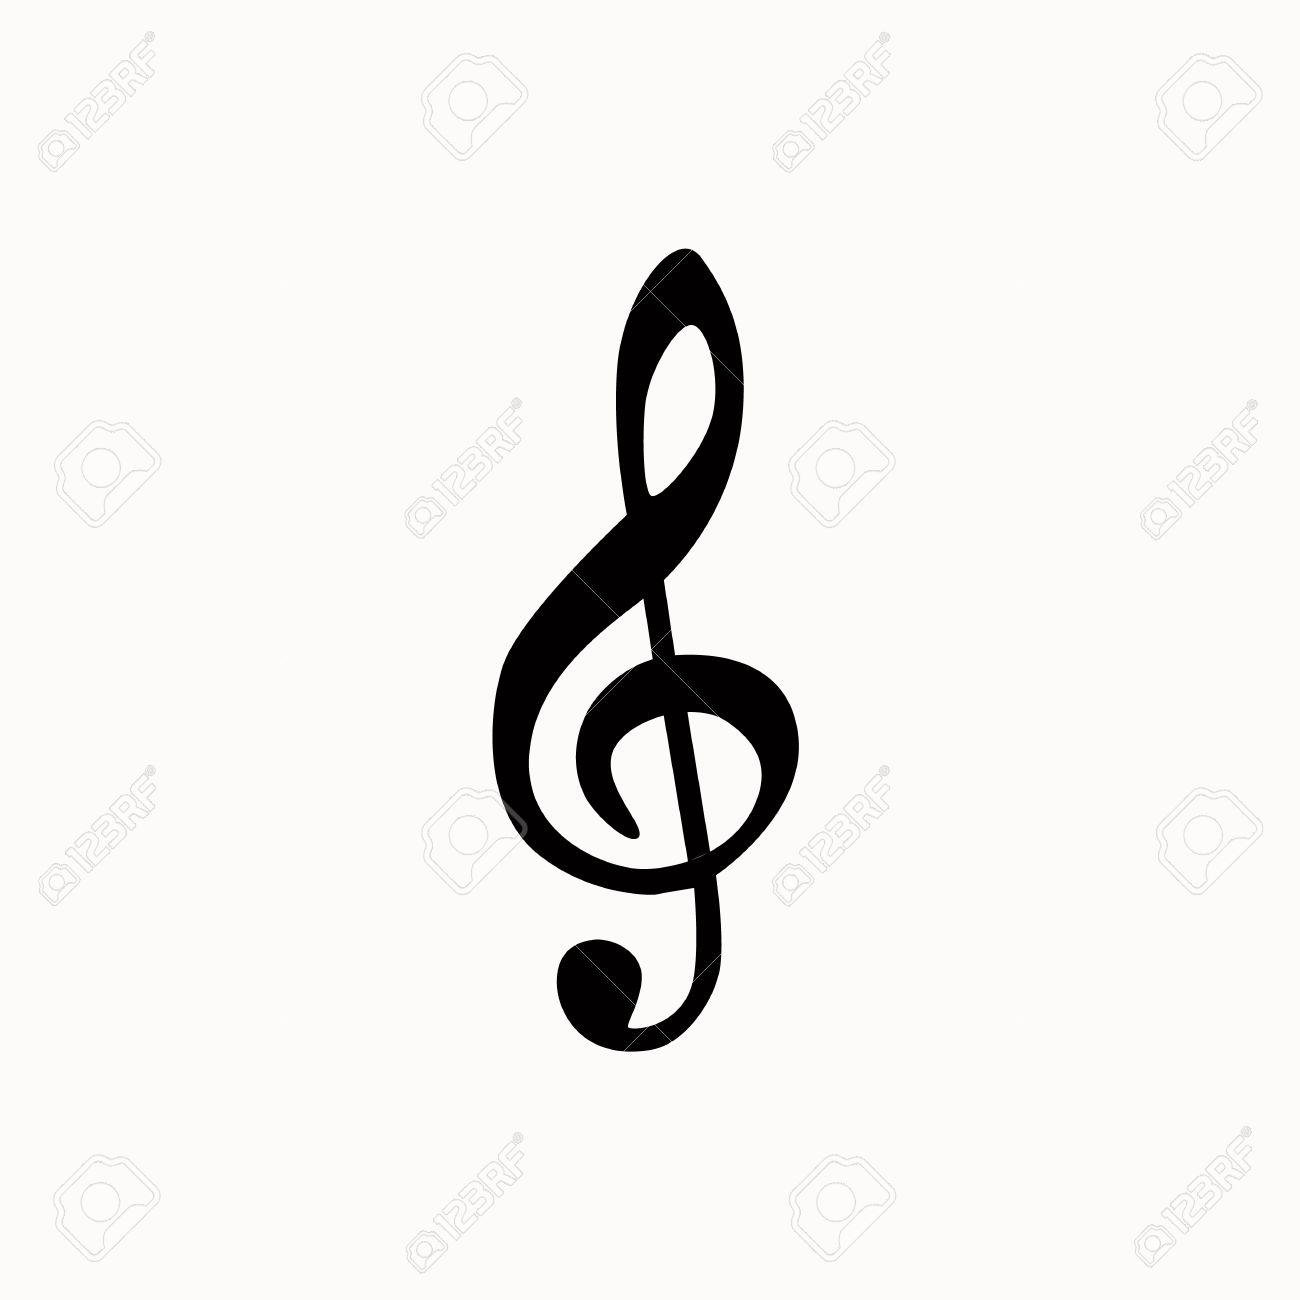 Music note isotated icon vector music note silhouette illustration music note isotated icon vector music note silhouette illustration concept of melody sign music thecheapjerseys Gallery